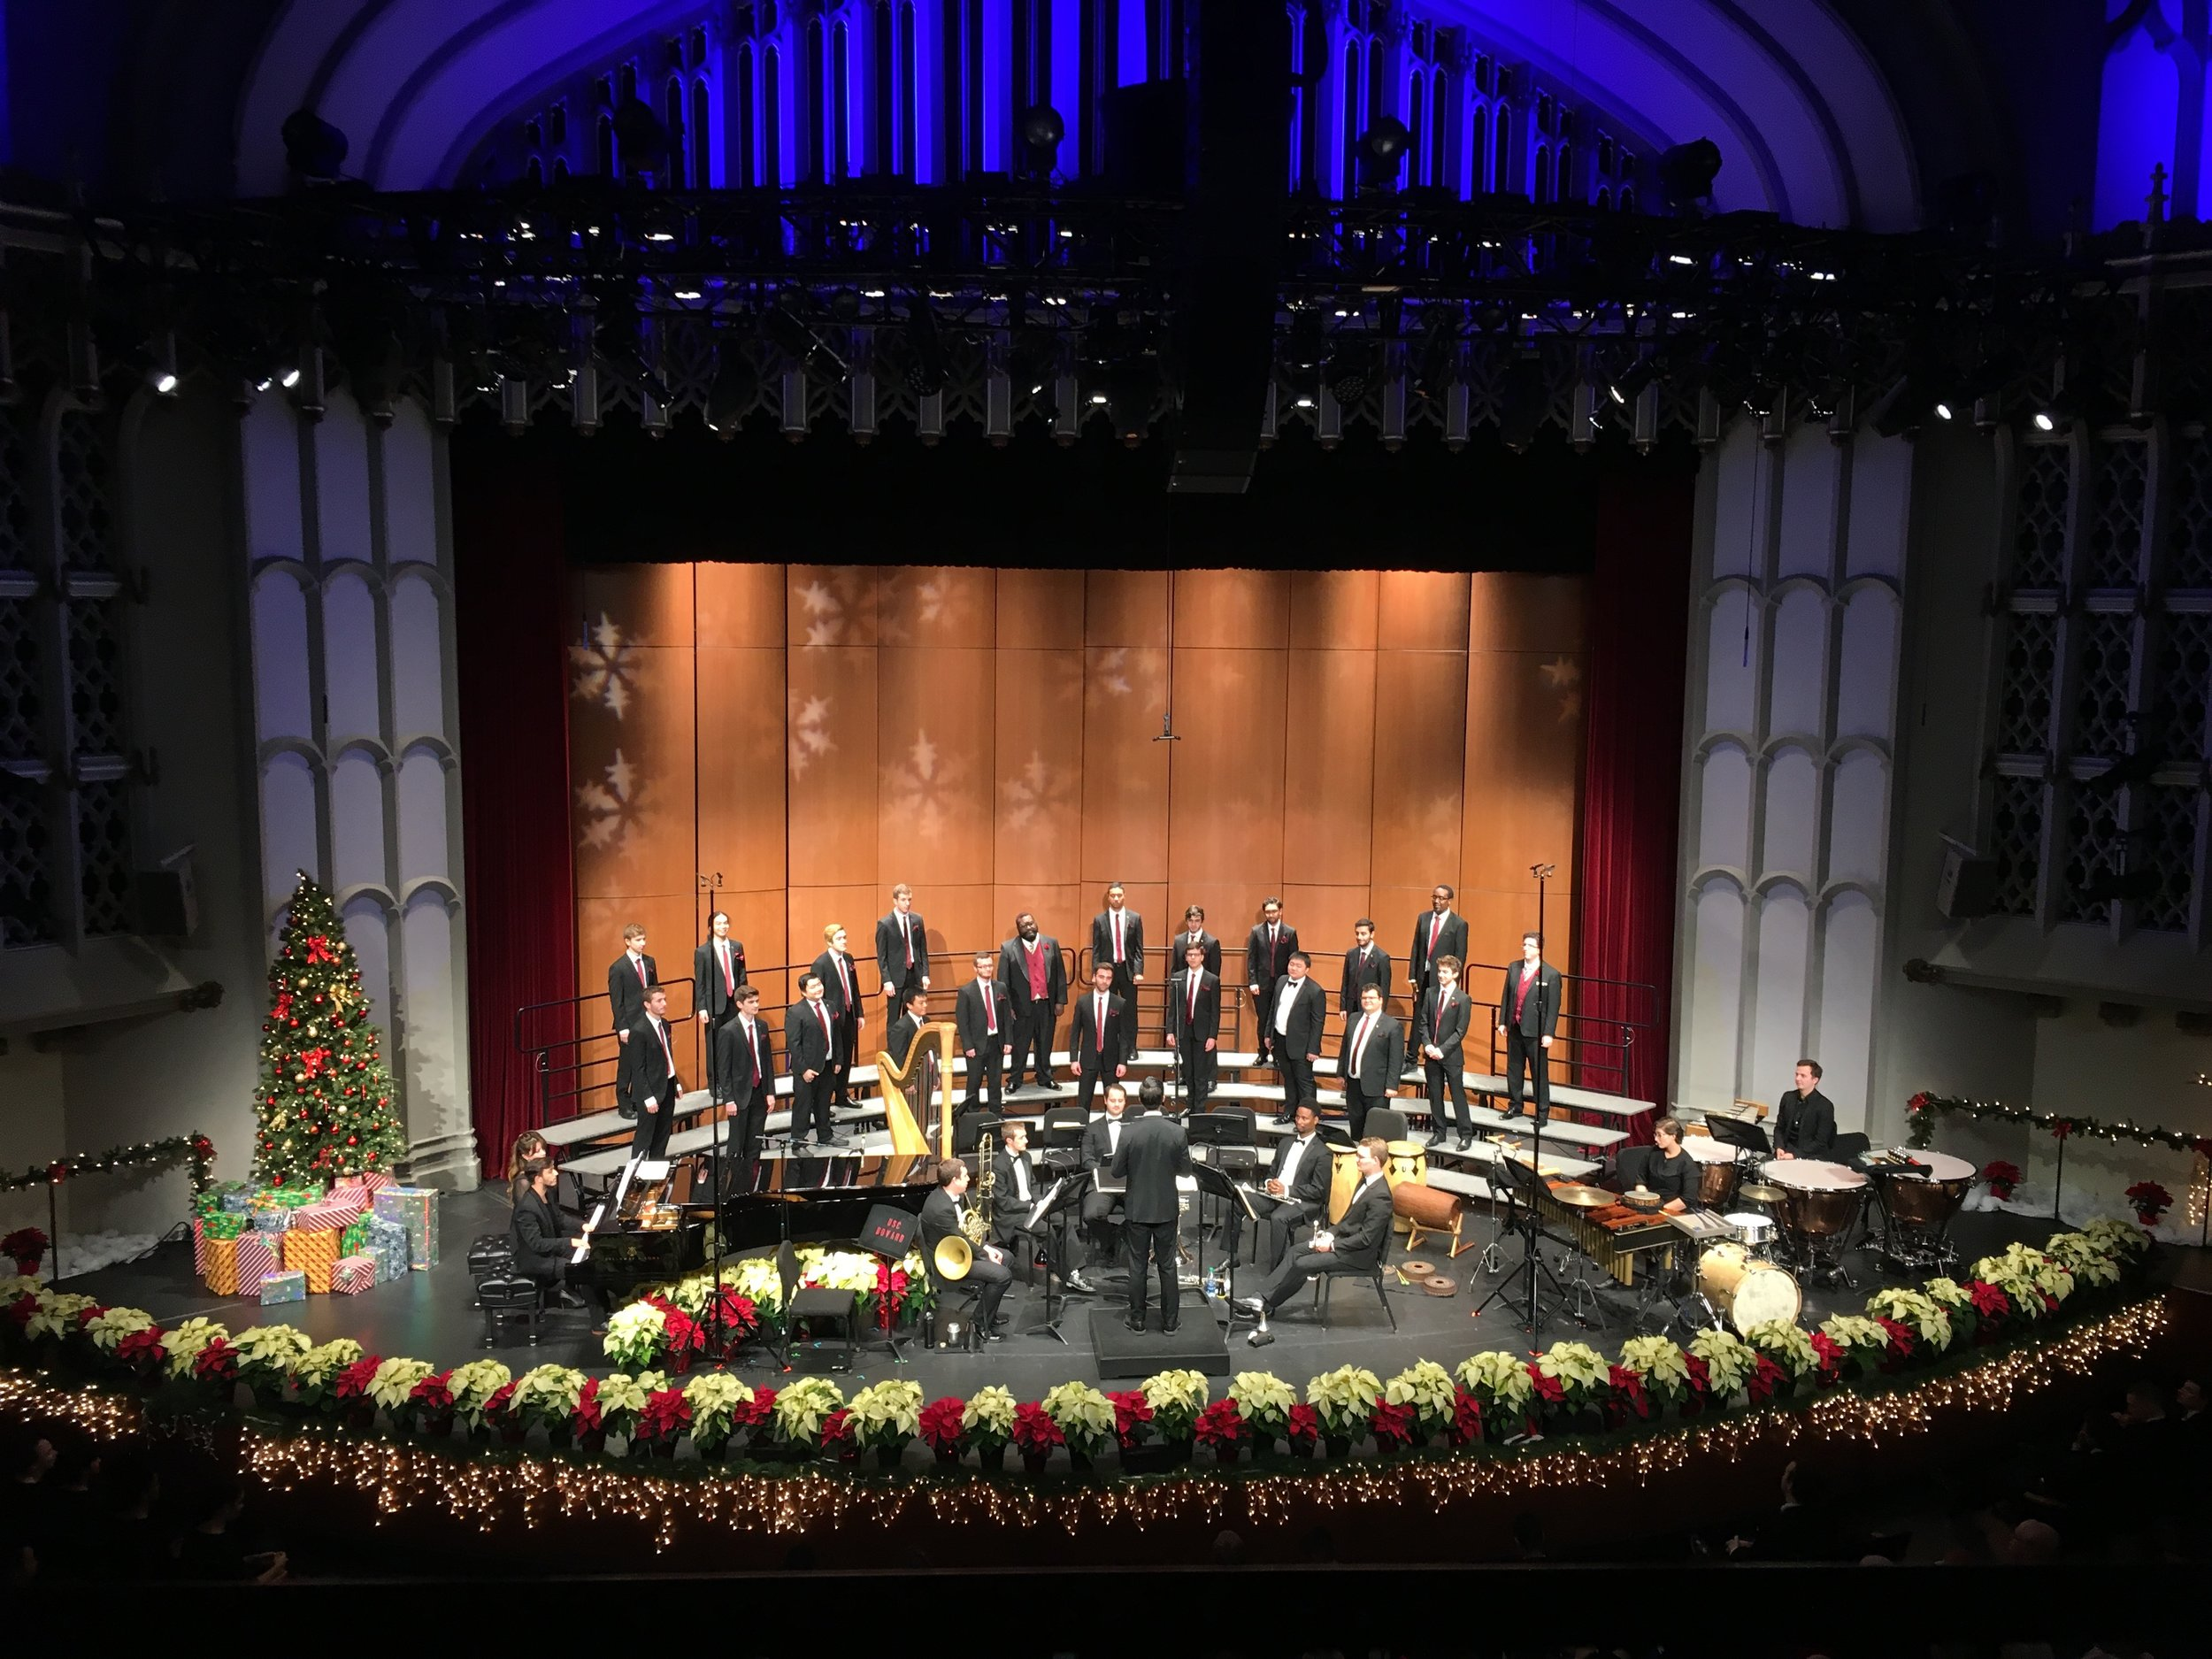 Daniel leads the USC Apollo Men's Chorus for USC's 2018 Winter Gala.